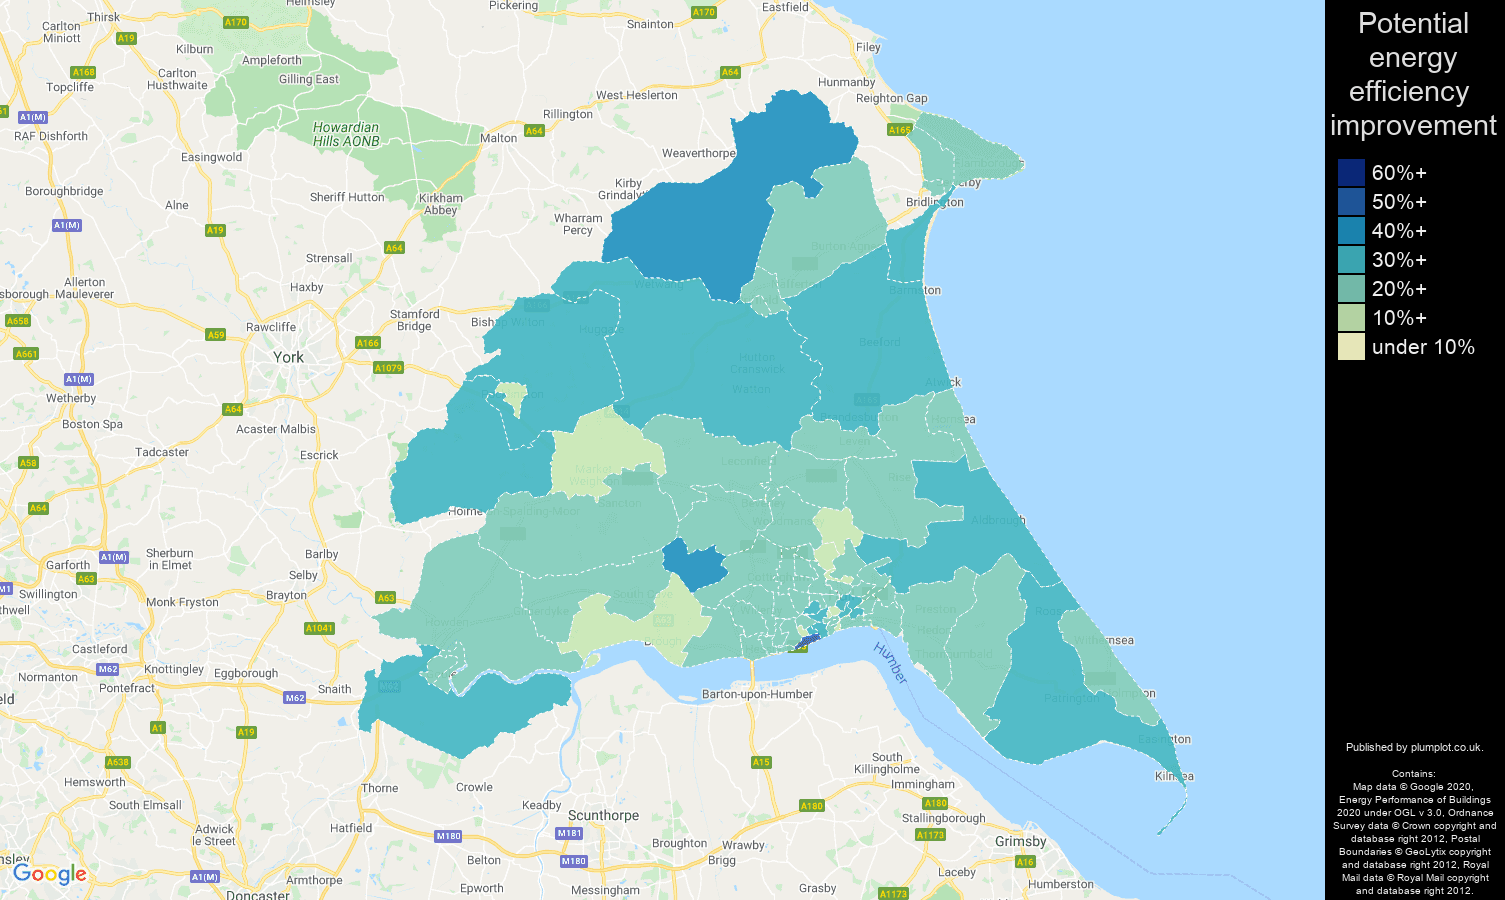 East Riding of Yorkshire map of potential energy efficiency improvement of houses